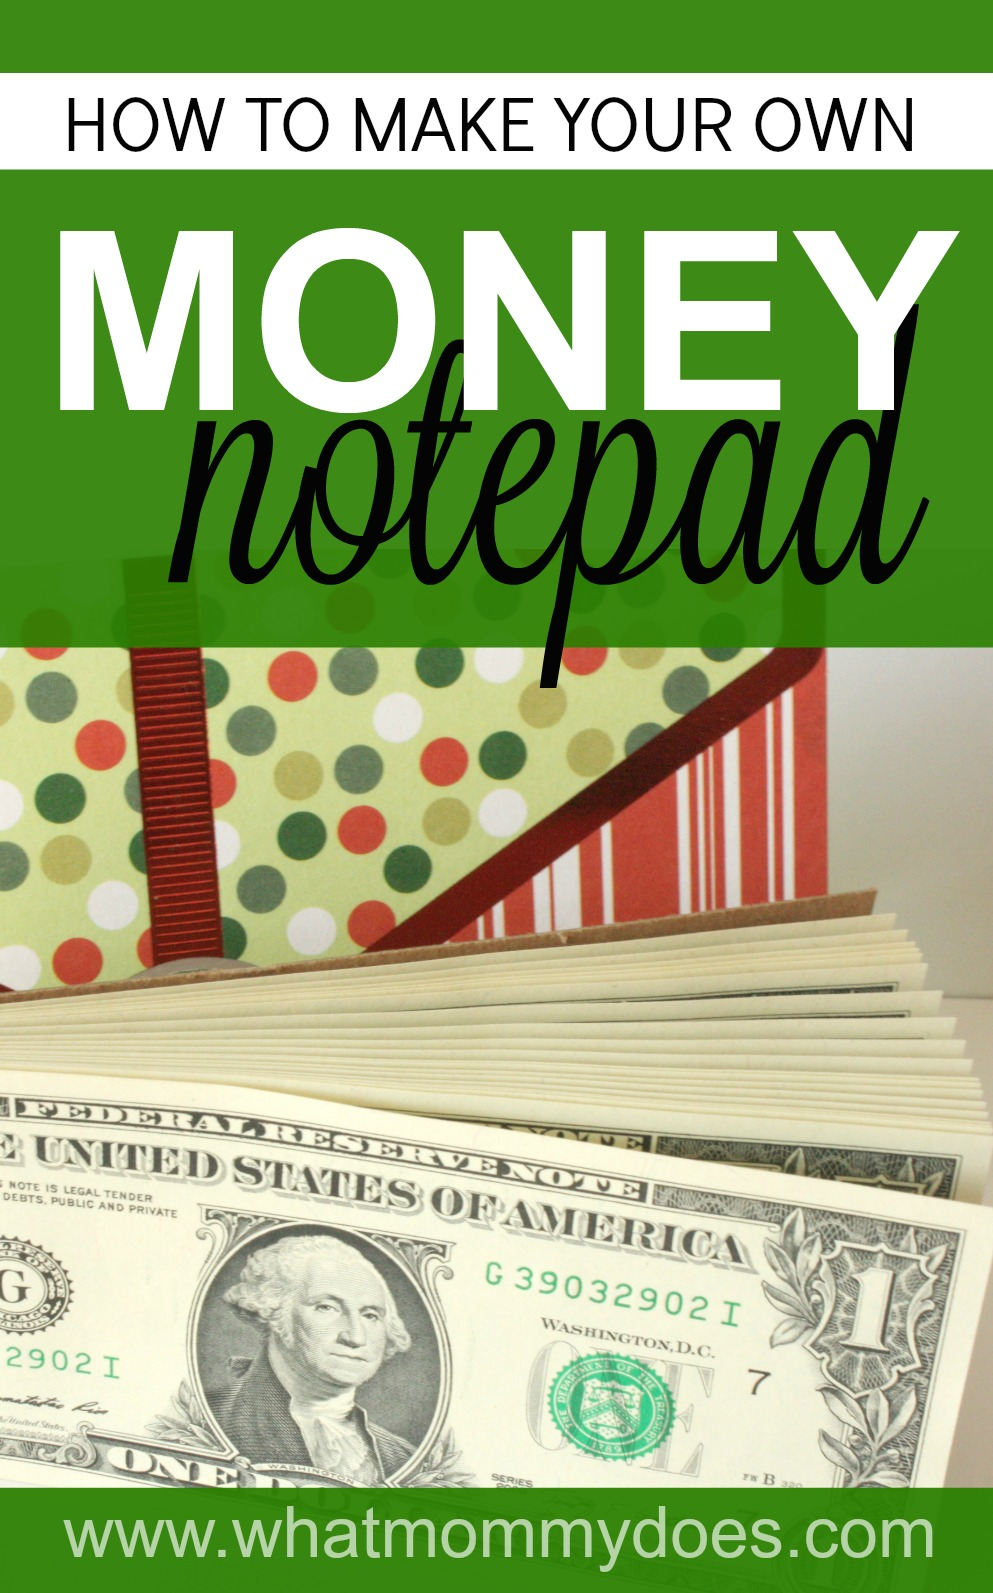 How to Make a Money Notepad - The COOLEST GIFT IDEA for teens!